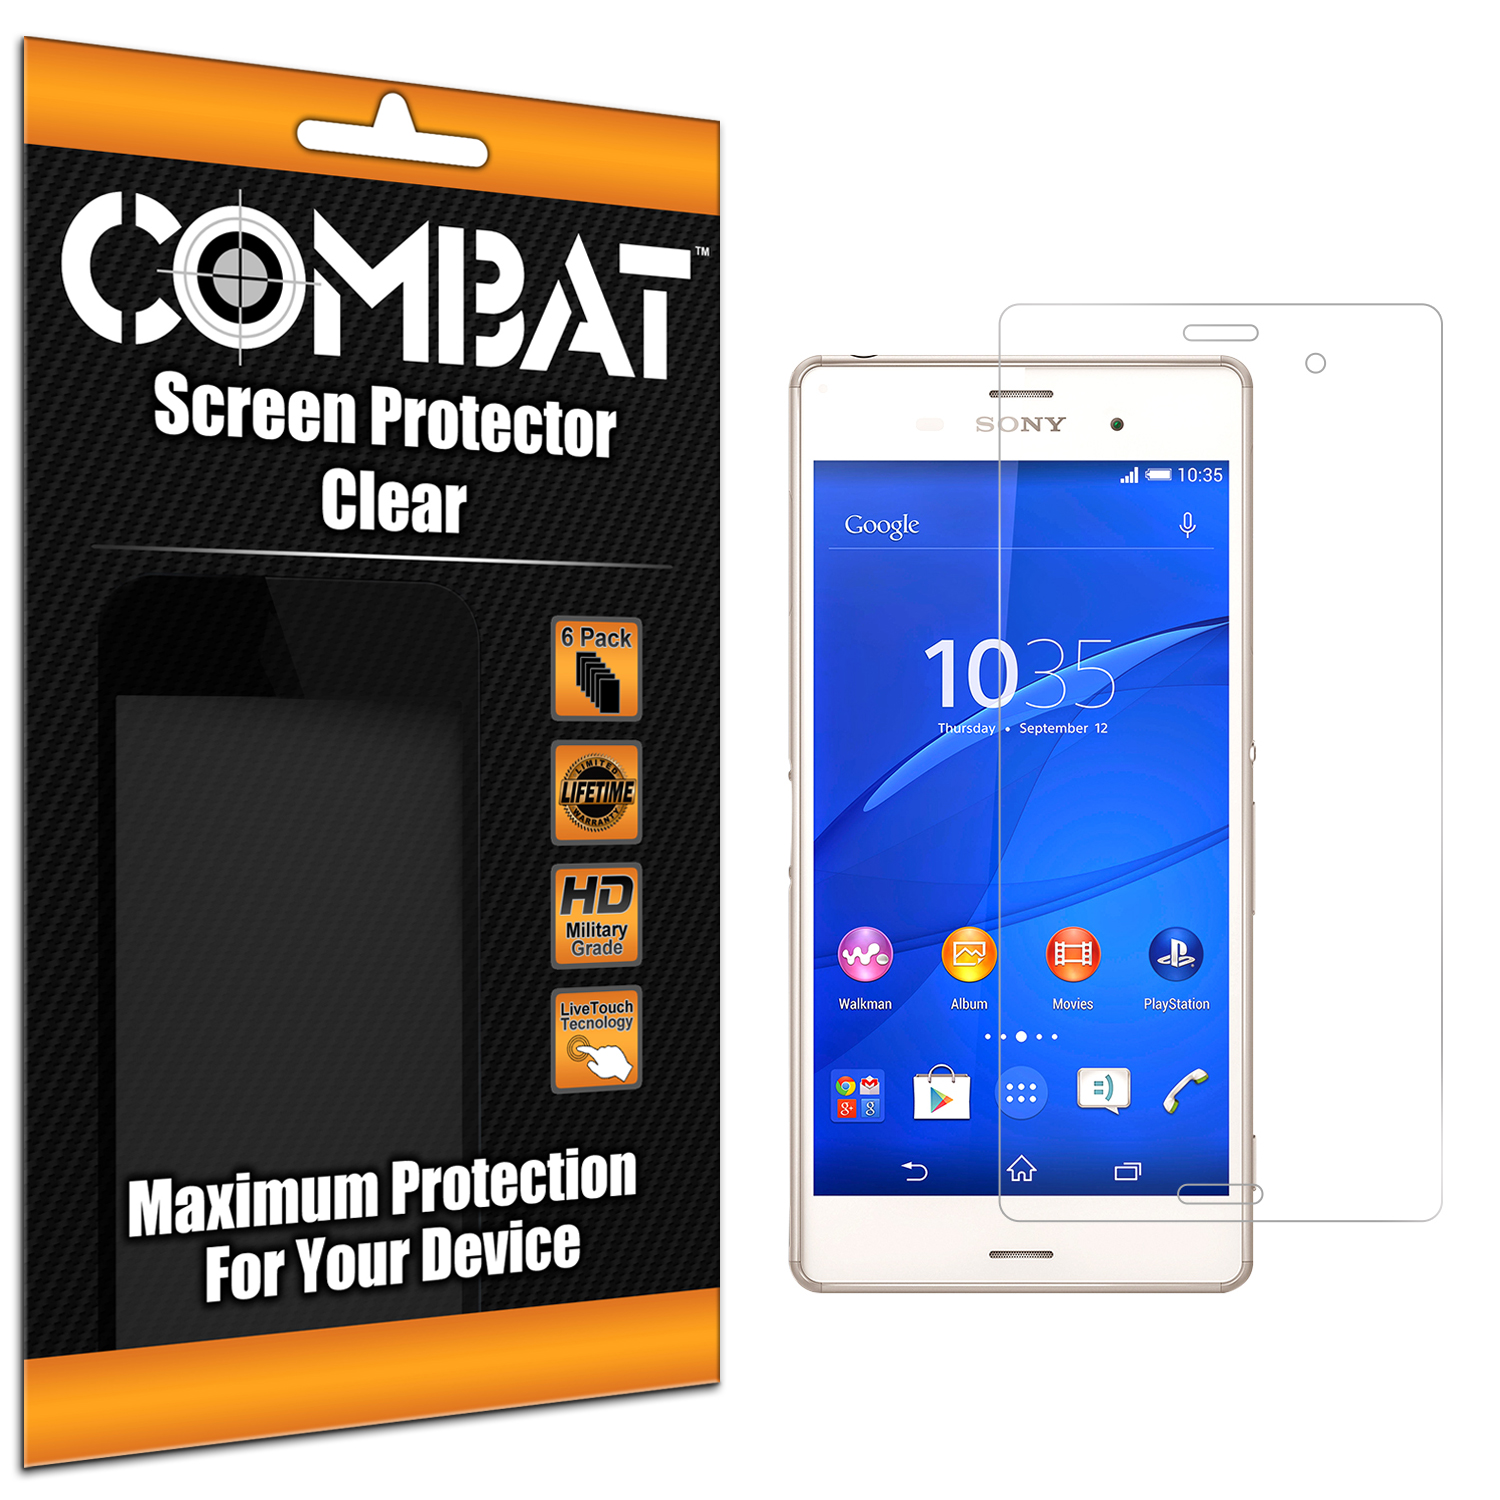 Sony Xperia Z3 Combat 6 Pack HD Clear Screen Protector